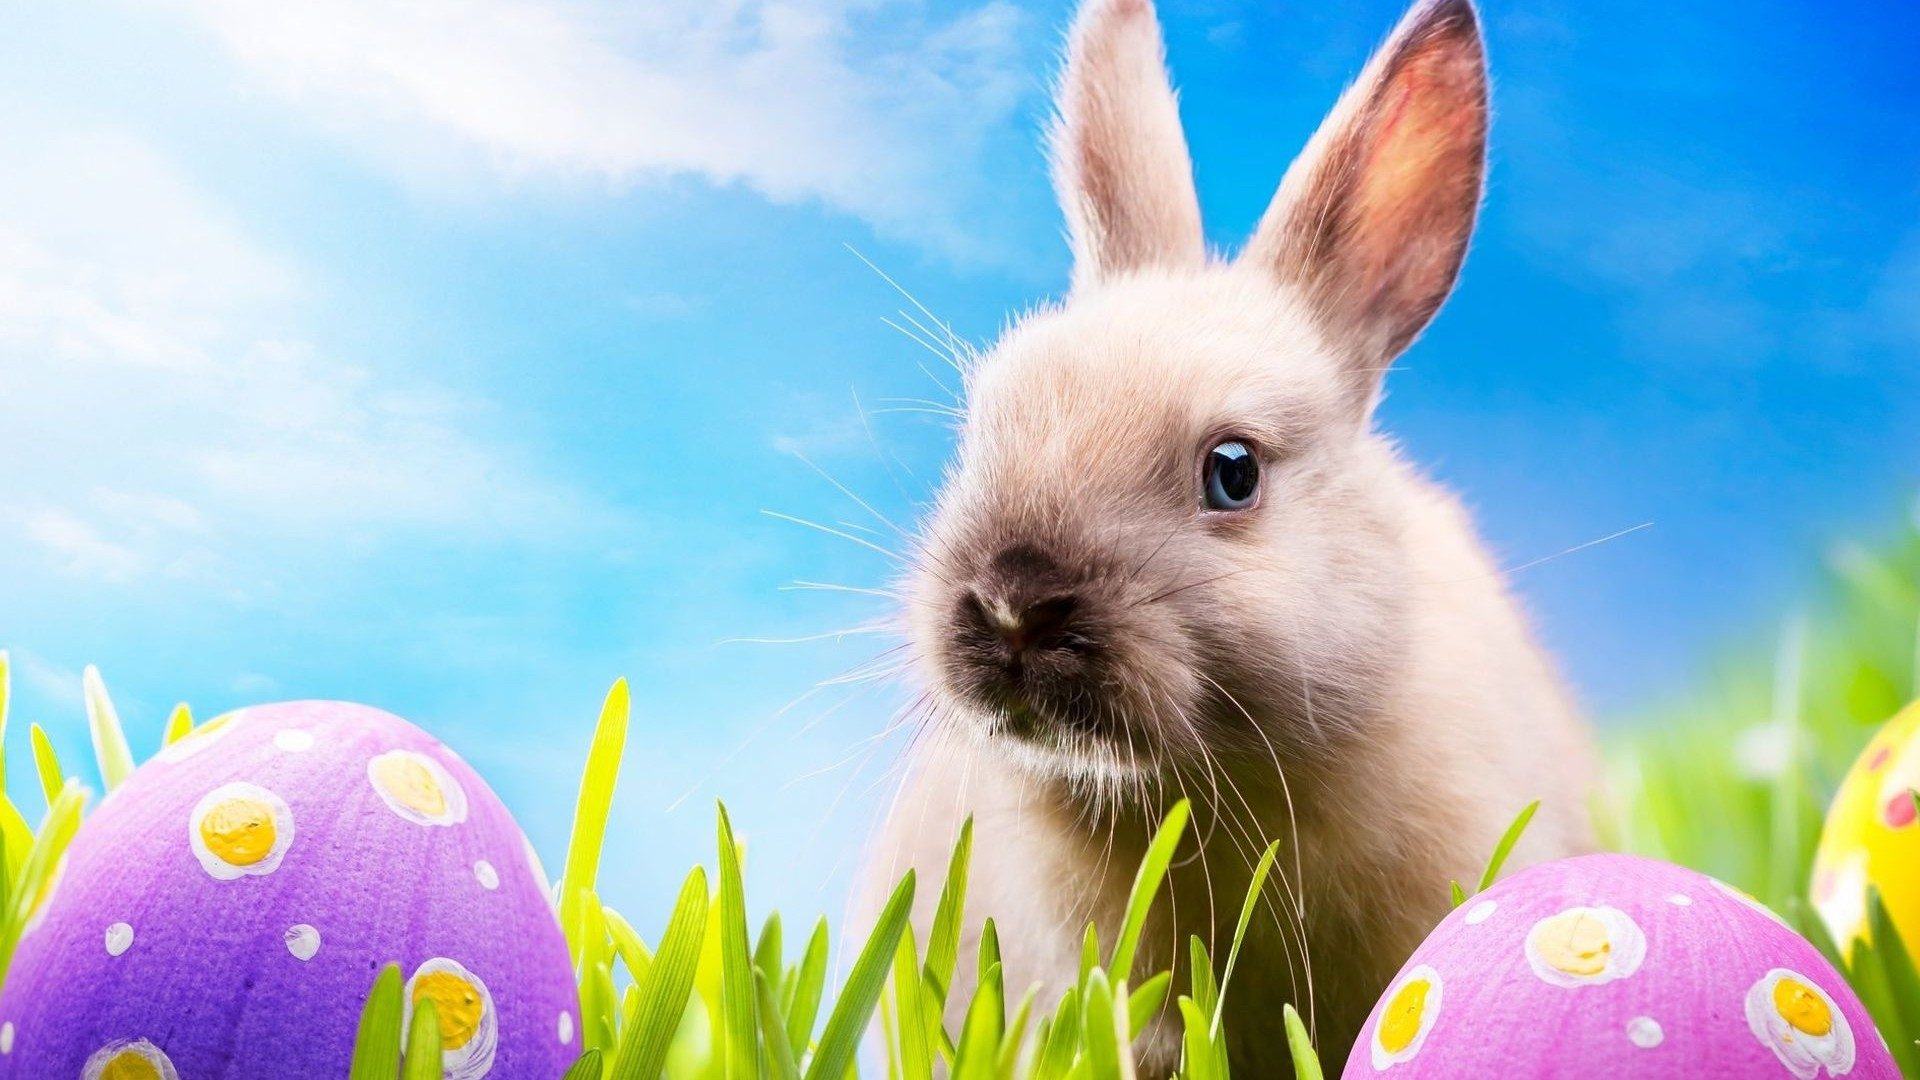 easter wallpapers hd - photo #8